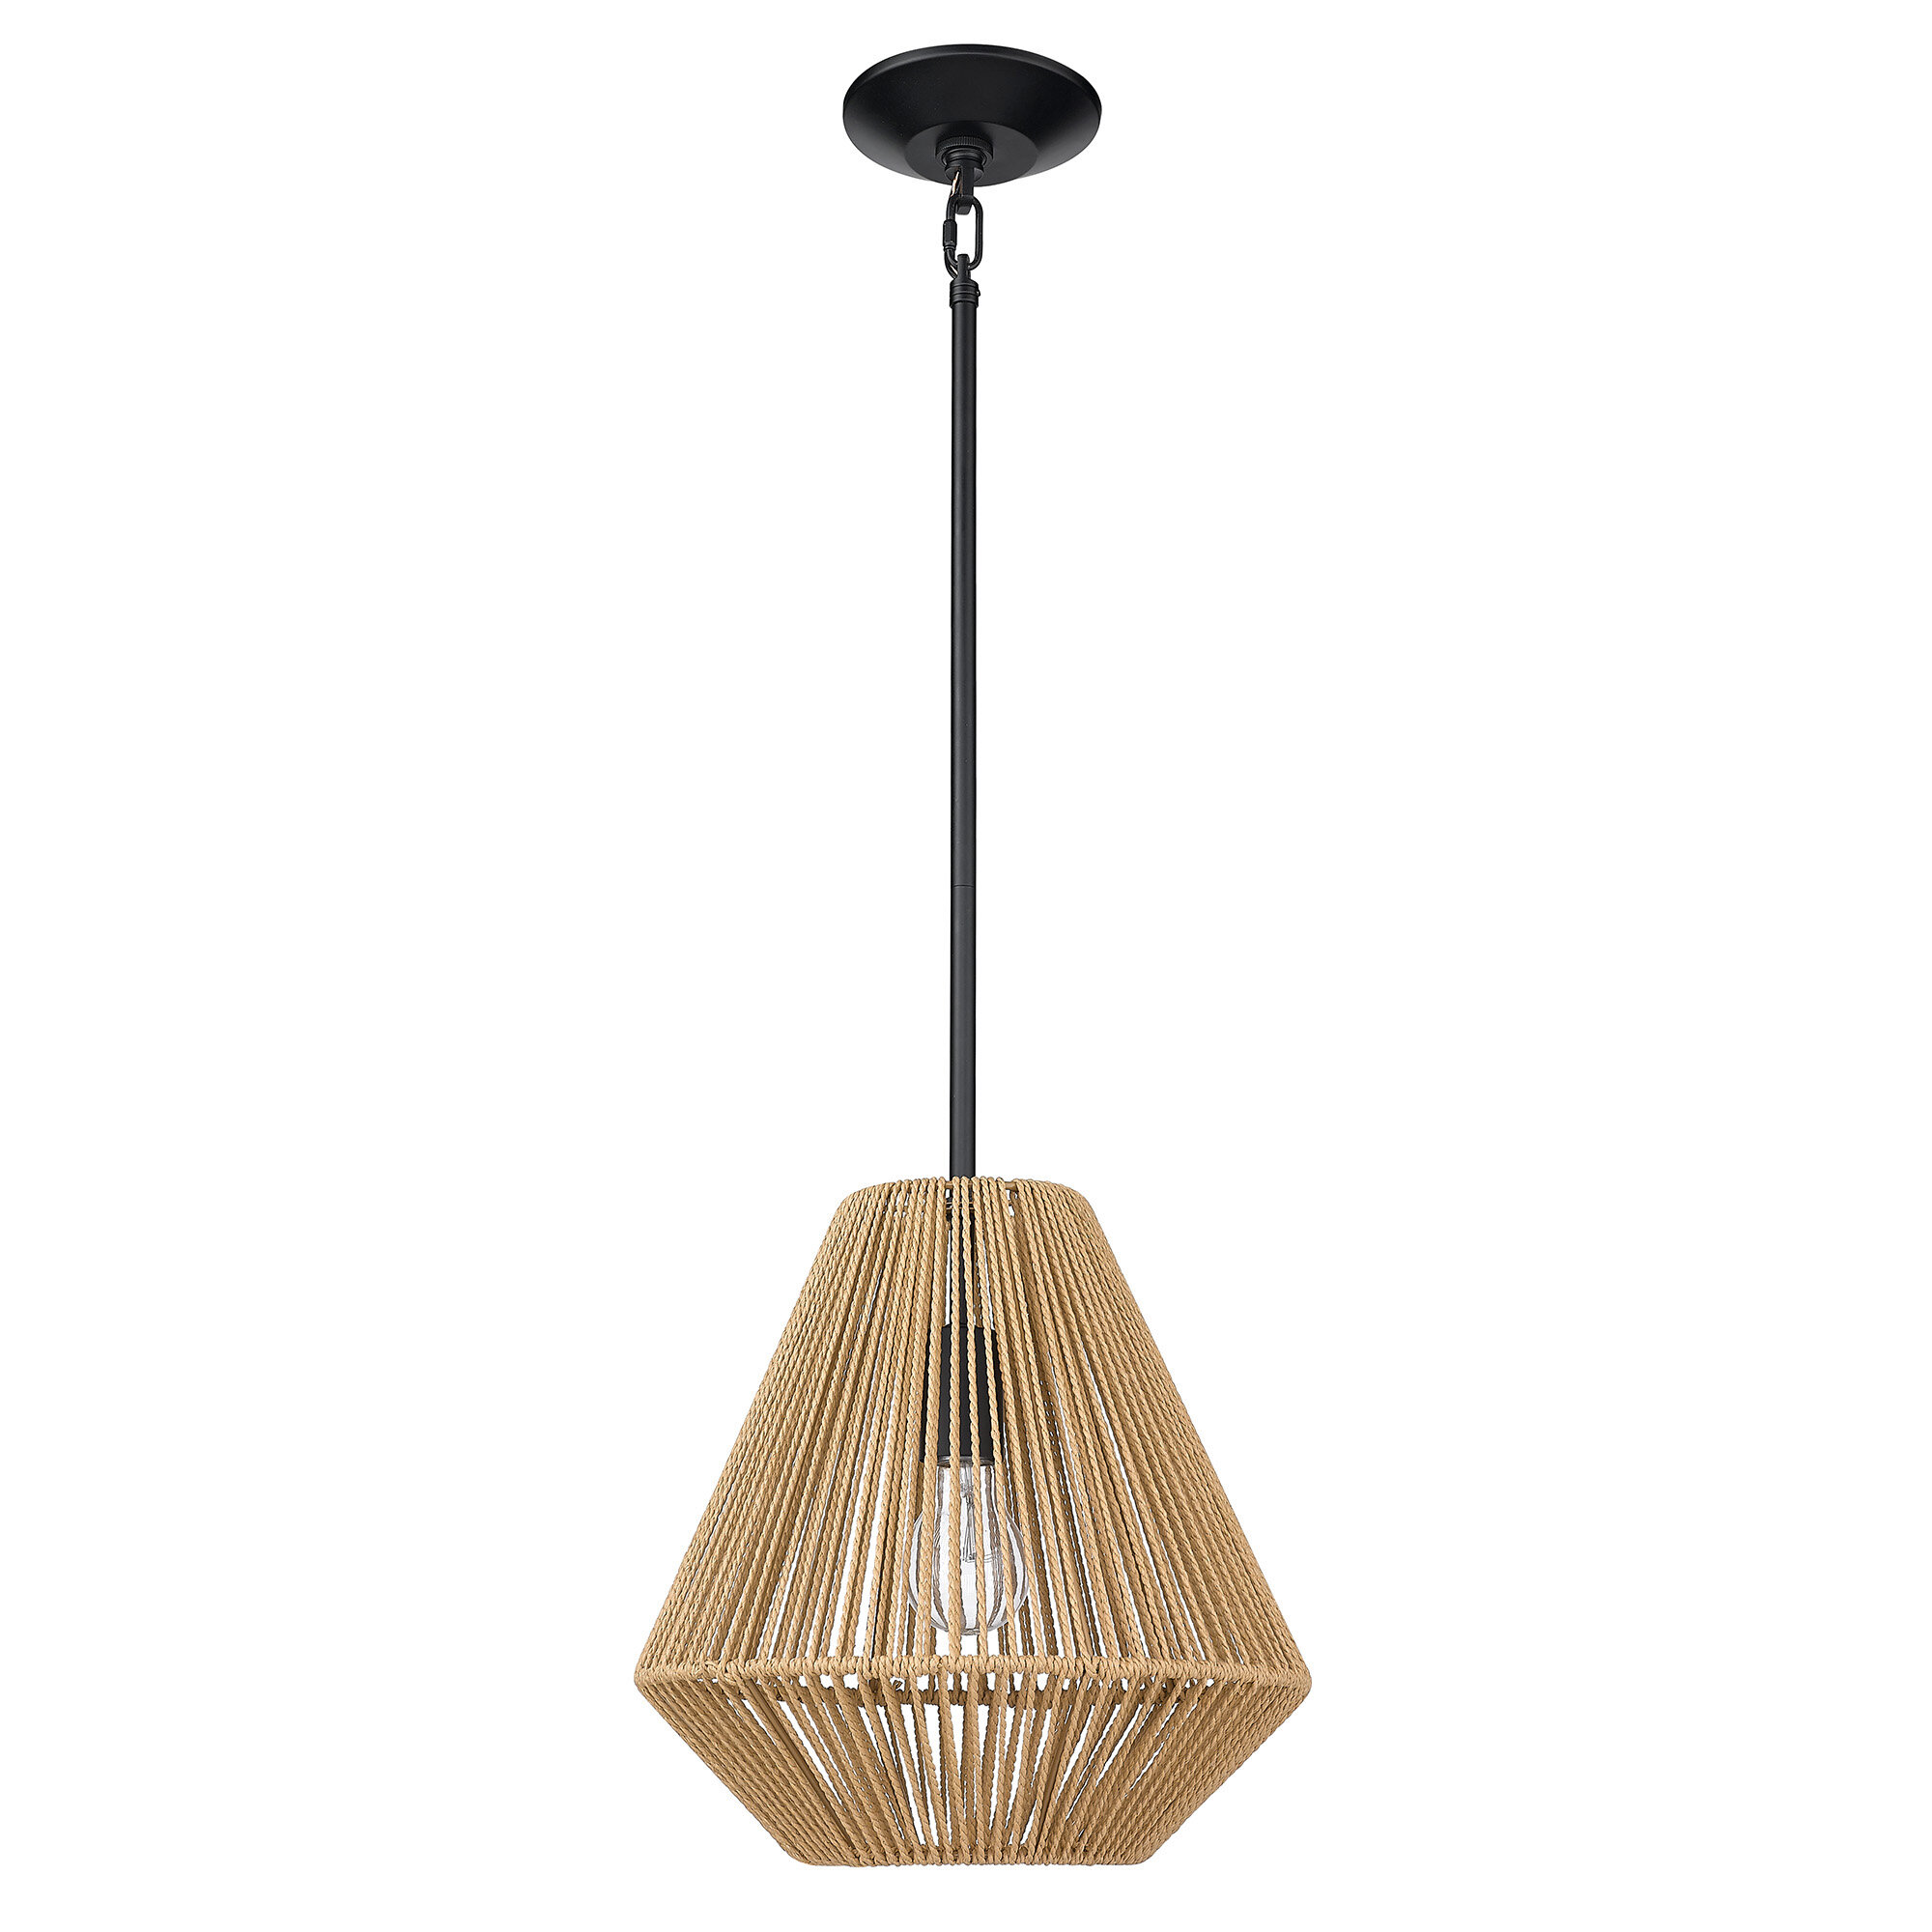 Abrams 1 Light Single Geometric Pendant Reviews Joss Main